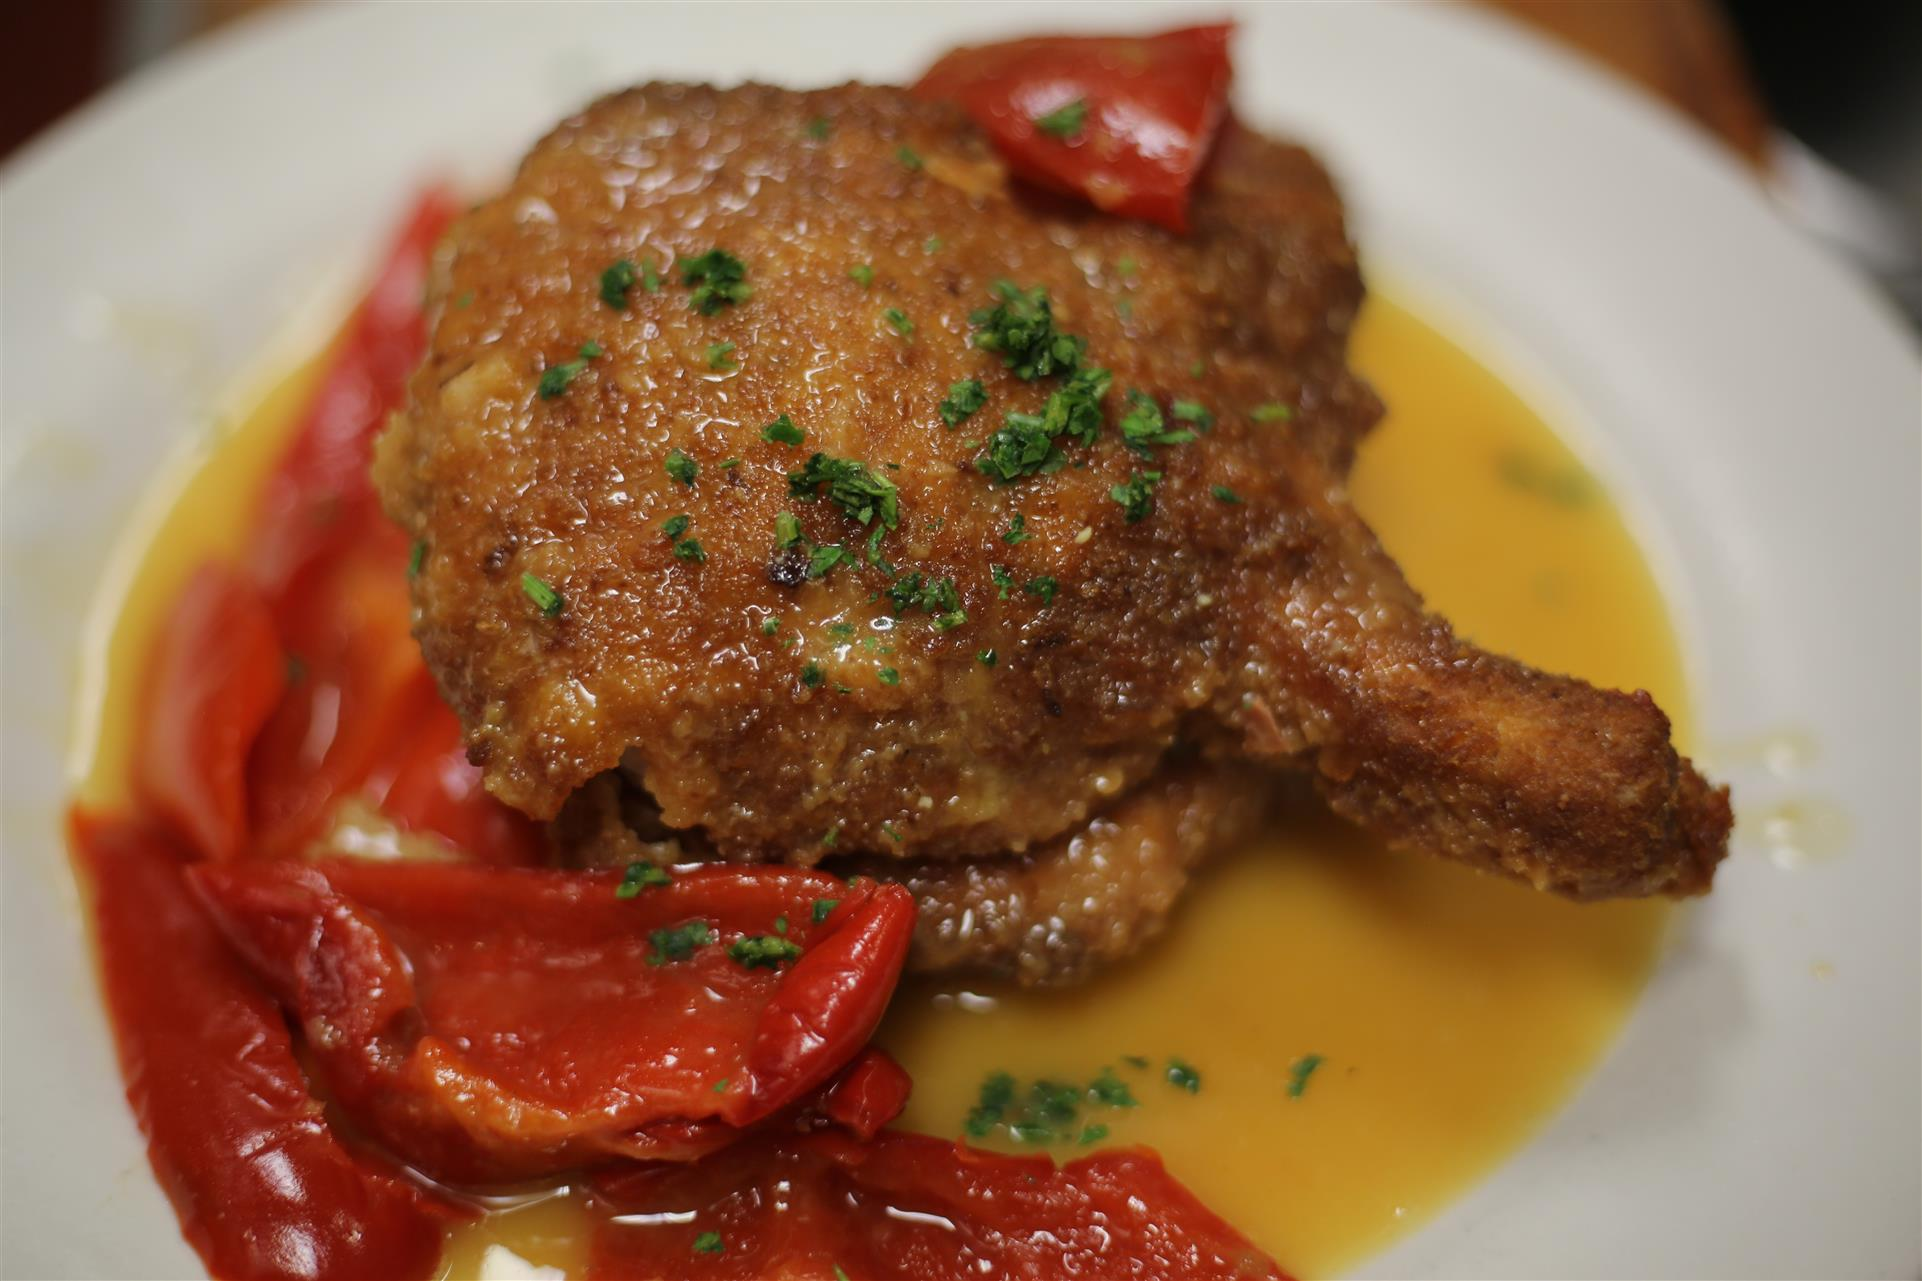 Fried Pork Chop in light sauce with red peppers.